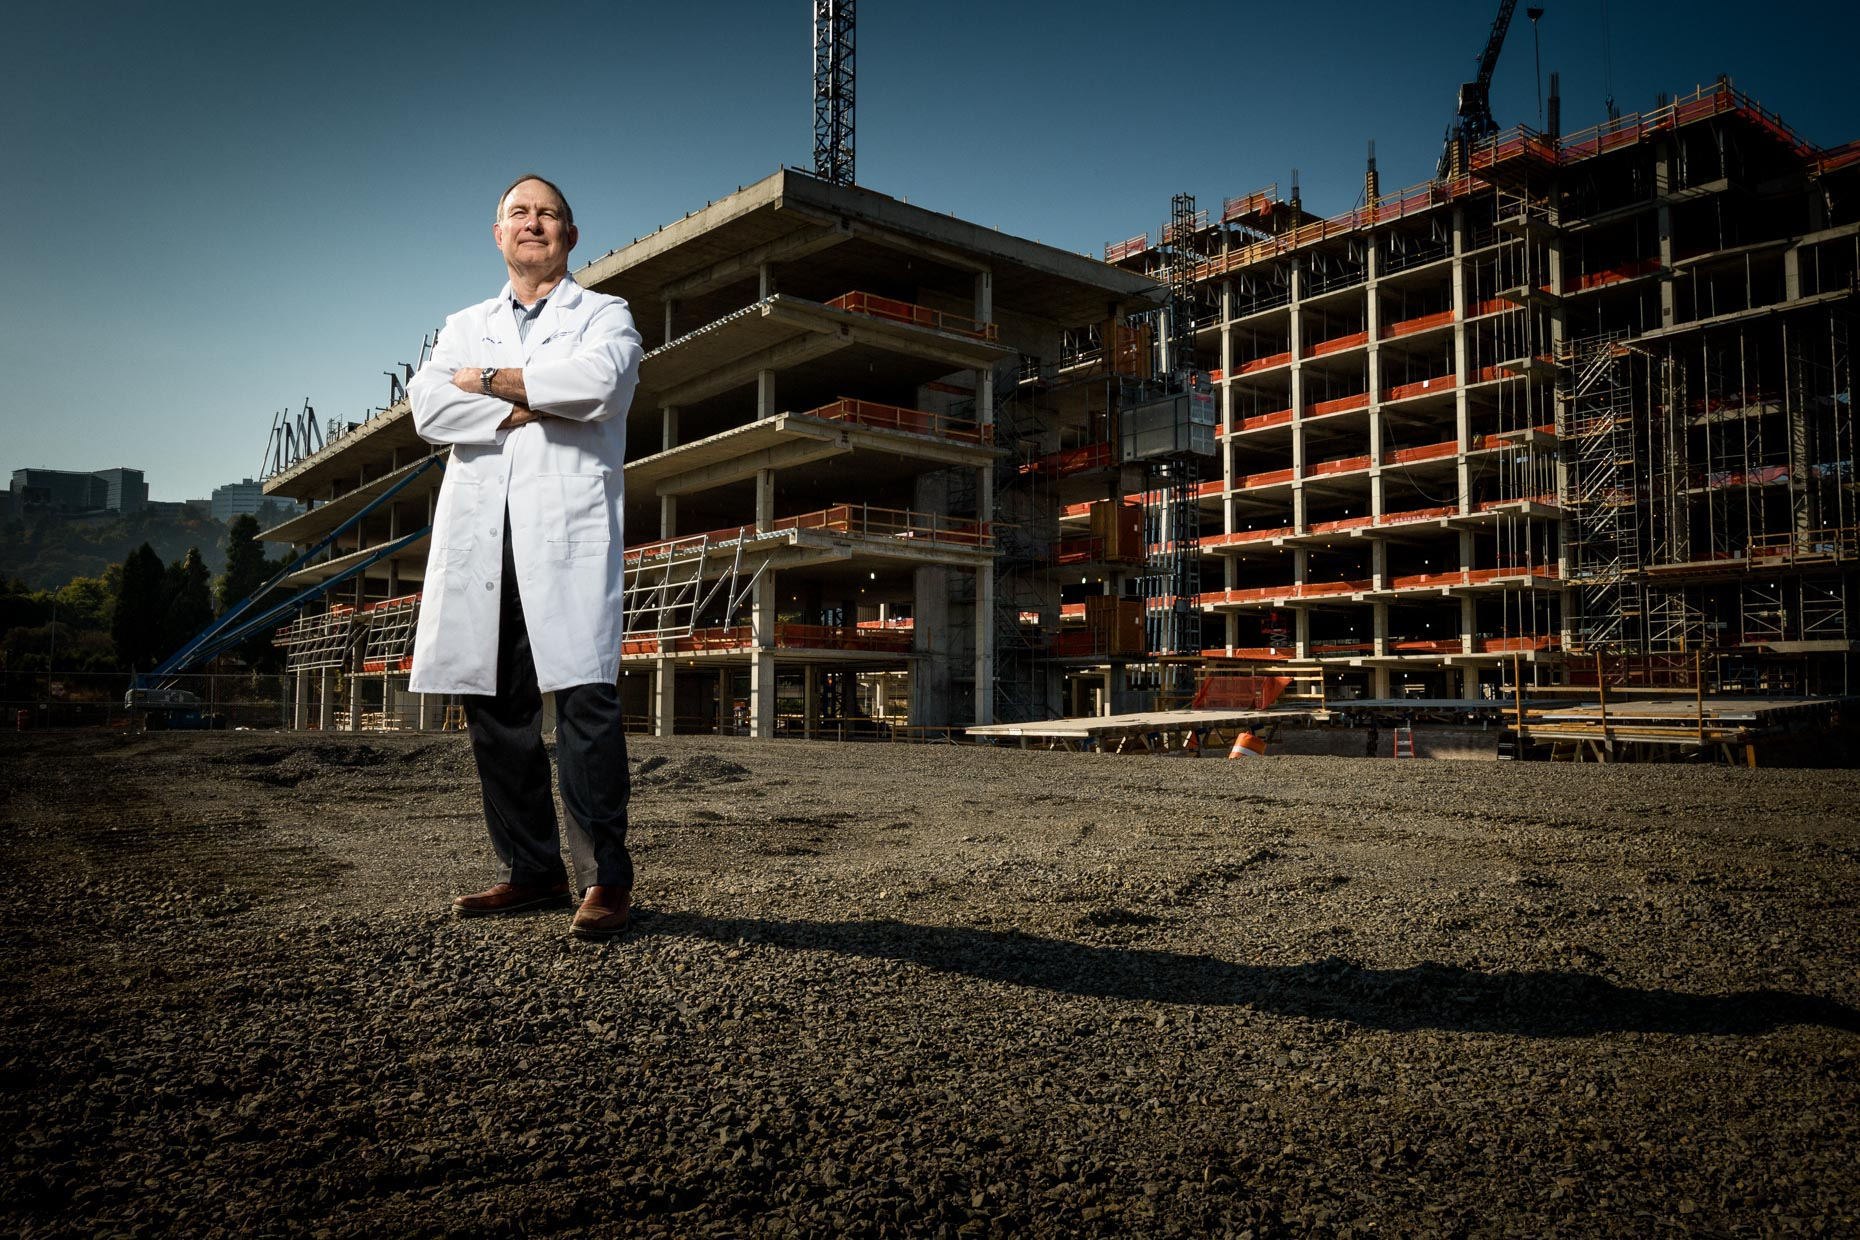 Full body environmental portrait OHSU Cancer researcher Joe Gray at the construction site of a new research facility for Portland Monthly Magazine by Andy Batt